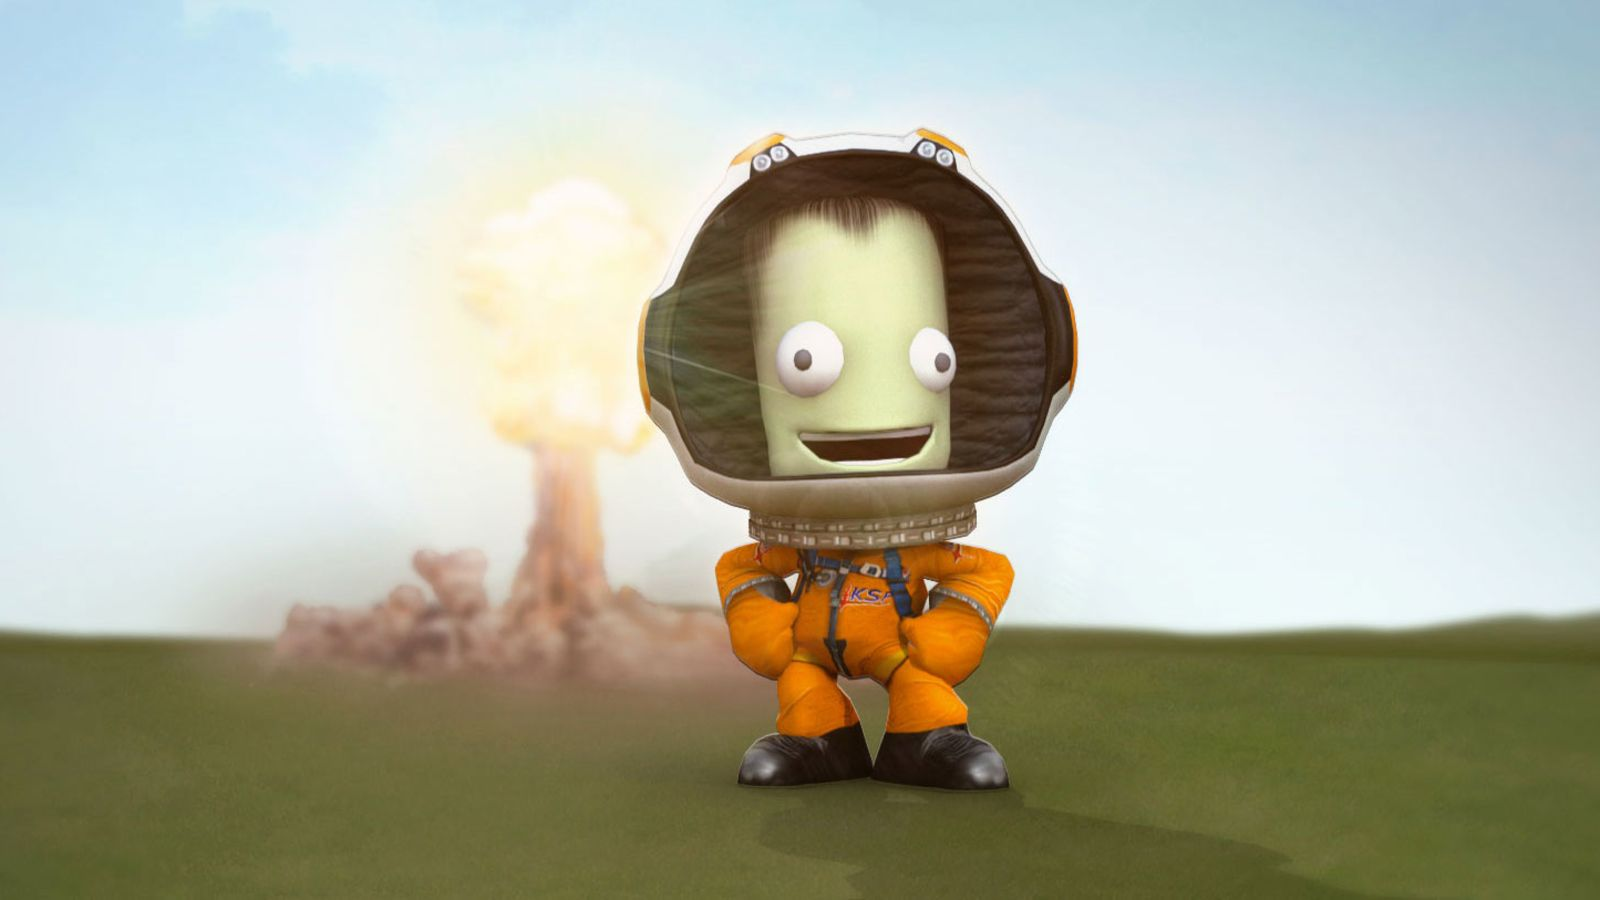 (Update) Valve has hired some of the developers behind Kerbal Space Program screenshot